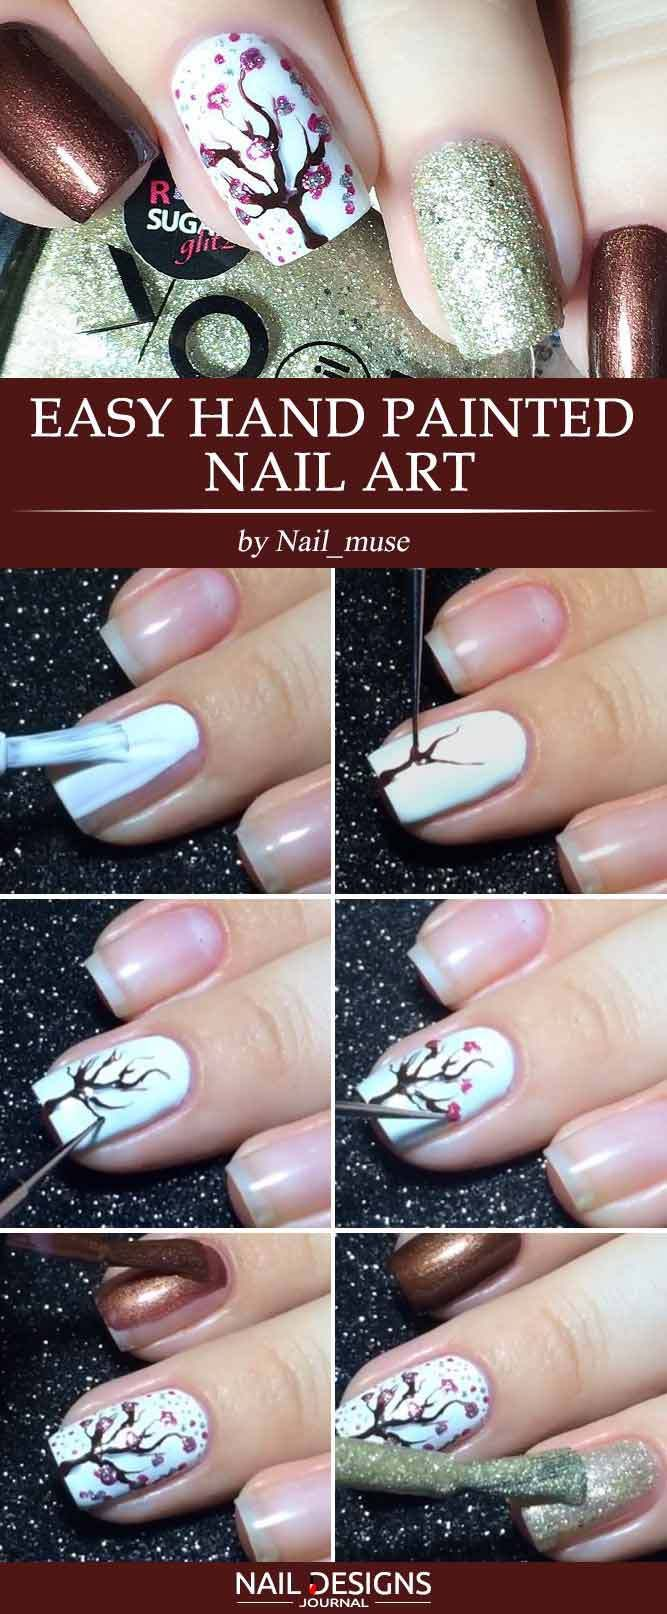 15 Super Easy Nail Designs Diy Tutorials 12 Easy Hand Painted Nail Art Nailart Naildesign N Nail Designs Easy Diy Simple Nail Designs Diy Nail Designs